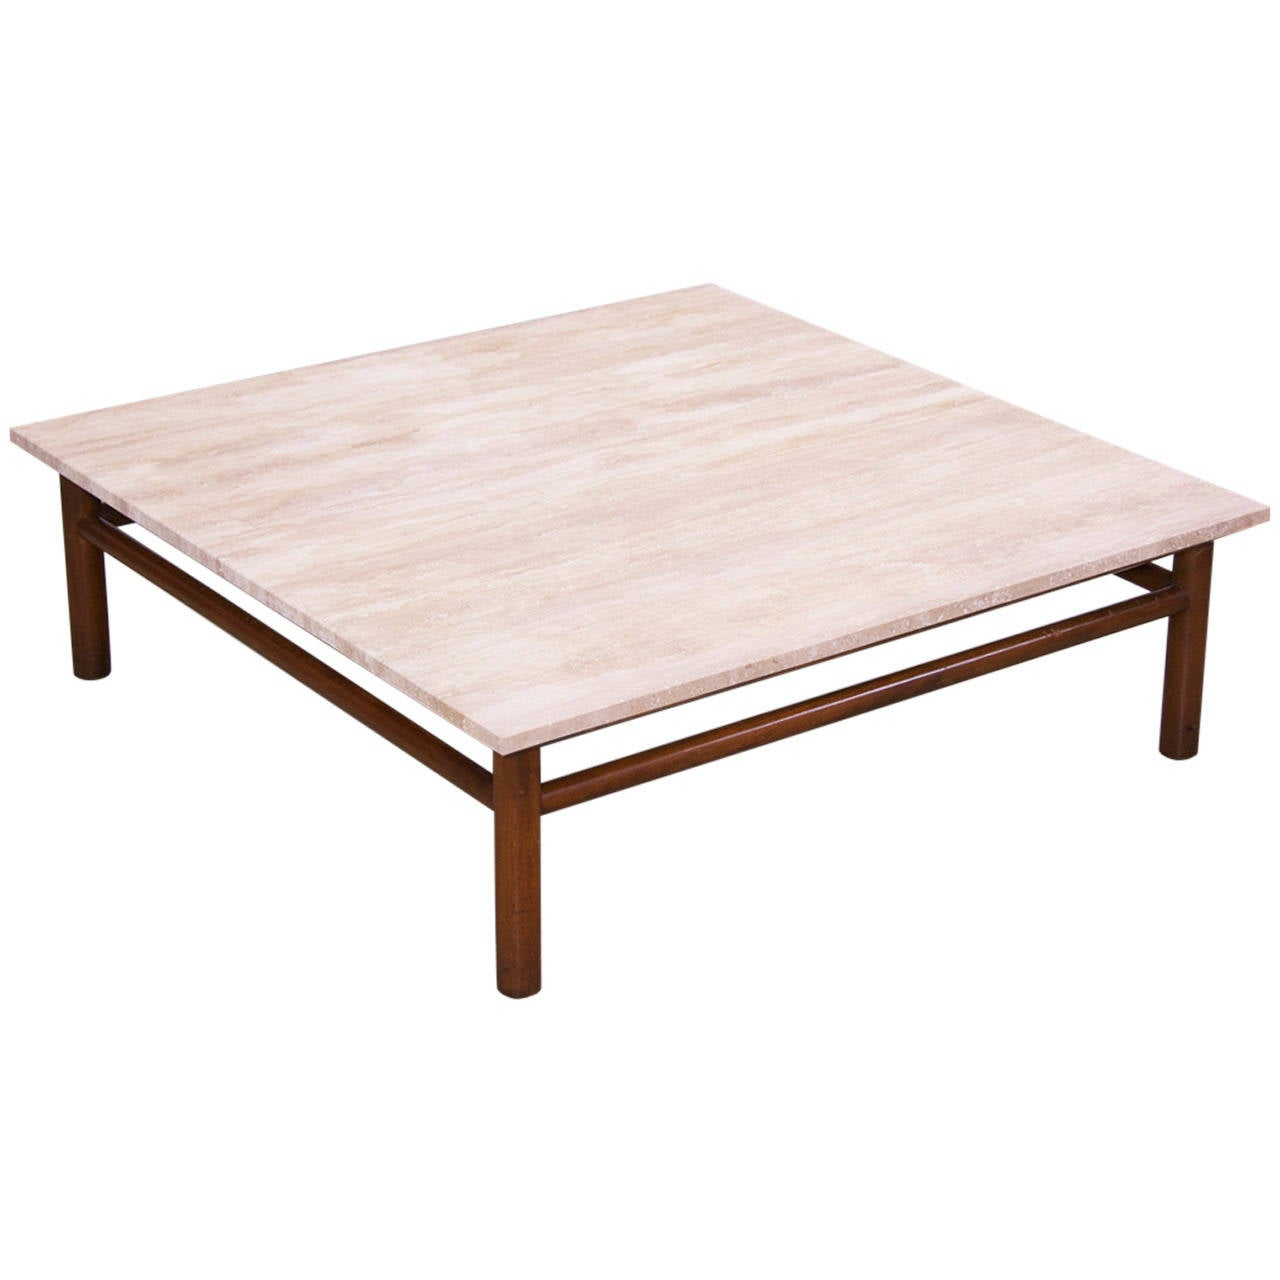 Coffee Table By T H Robsjohn Gibbings For Widdicomb With Travertine Top For Sale At 1stdibs